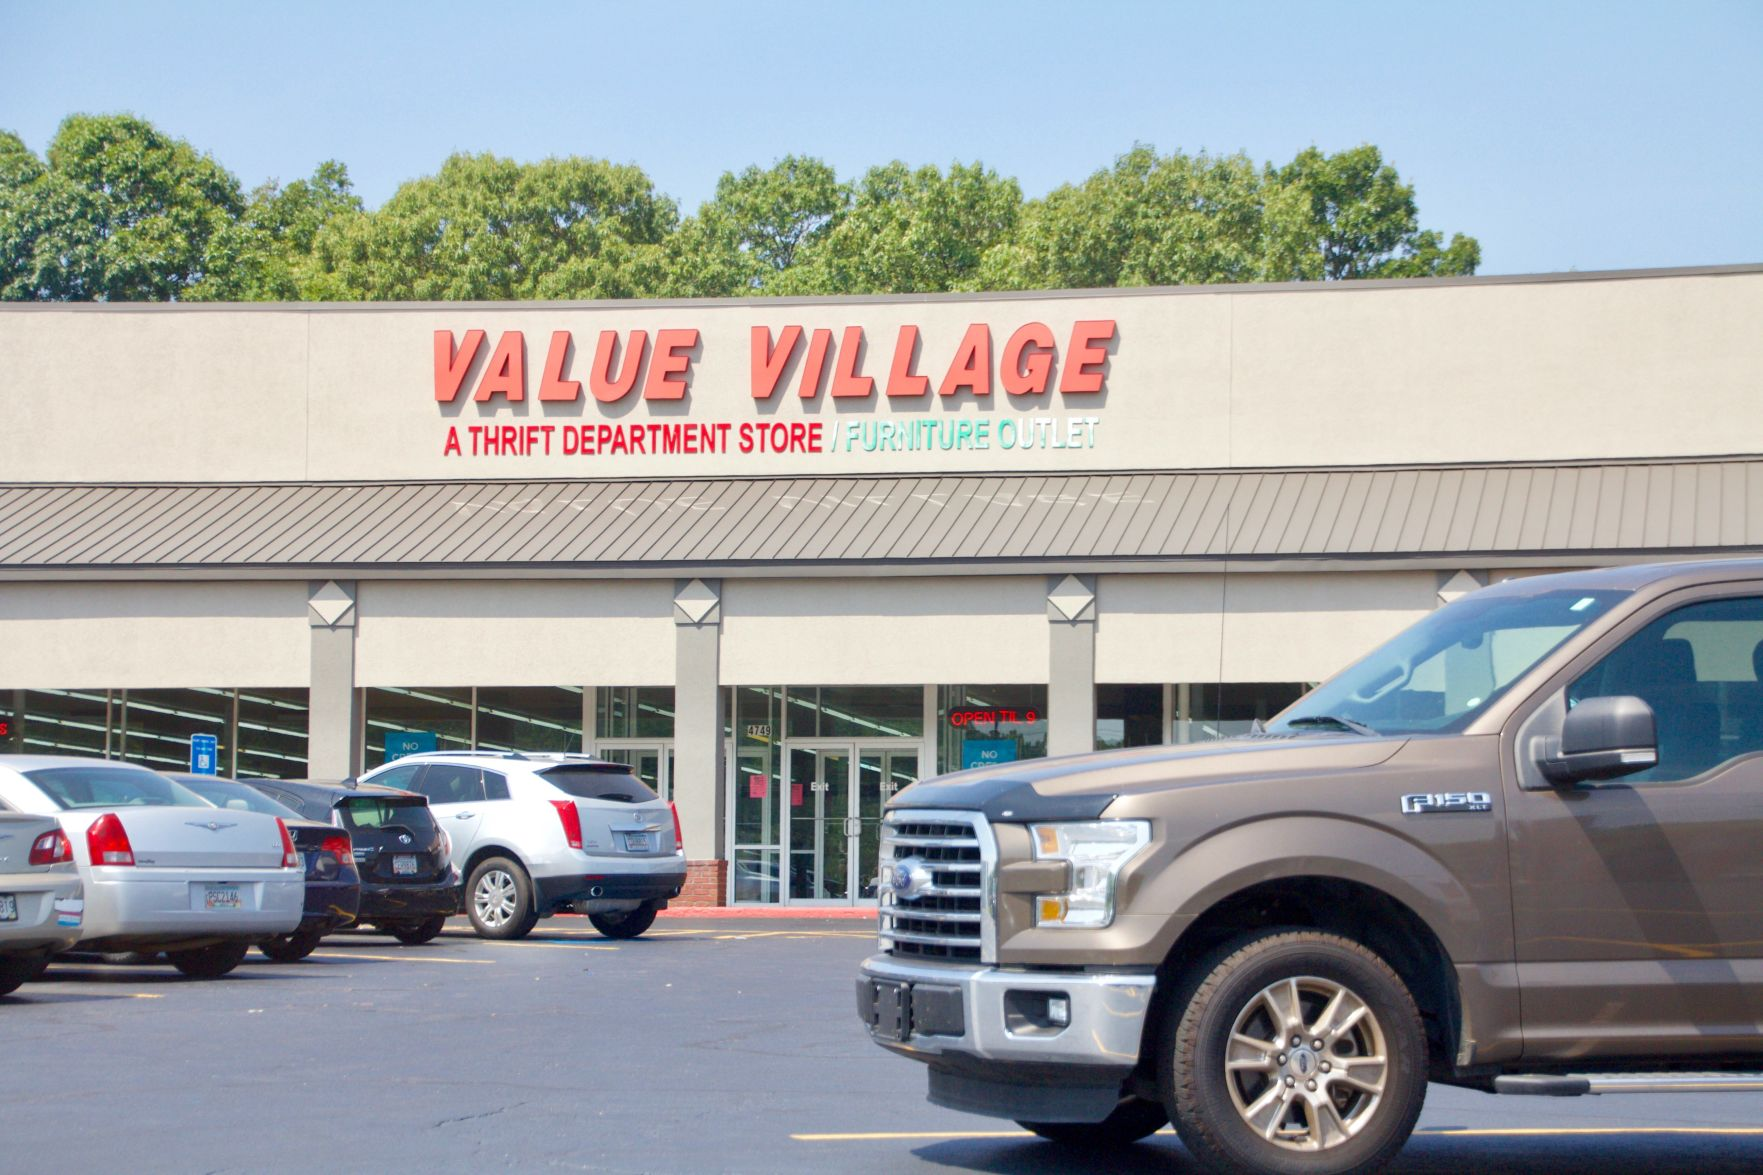 EEOC: Value Village settles discrimination suit in Forest Park